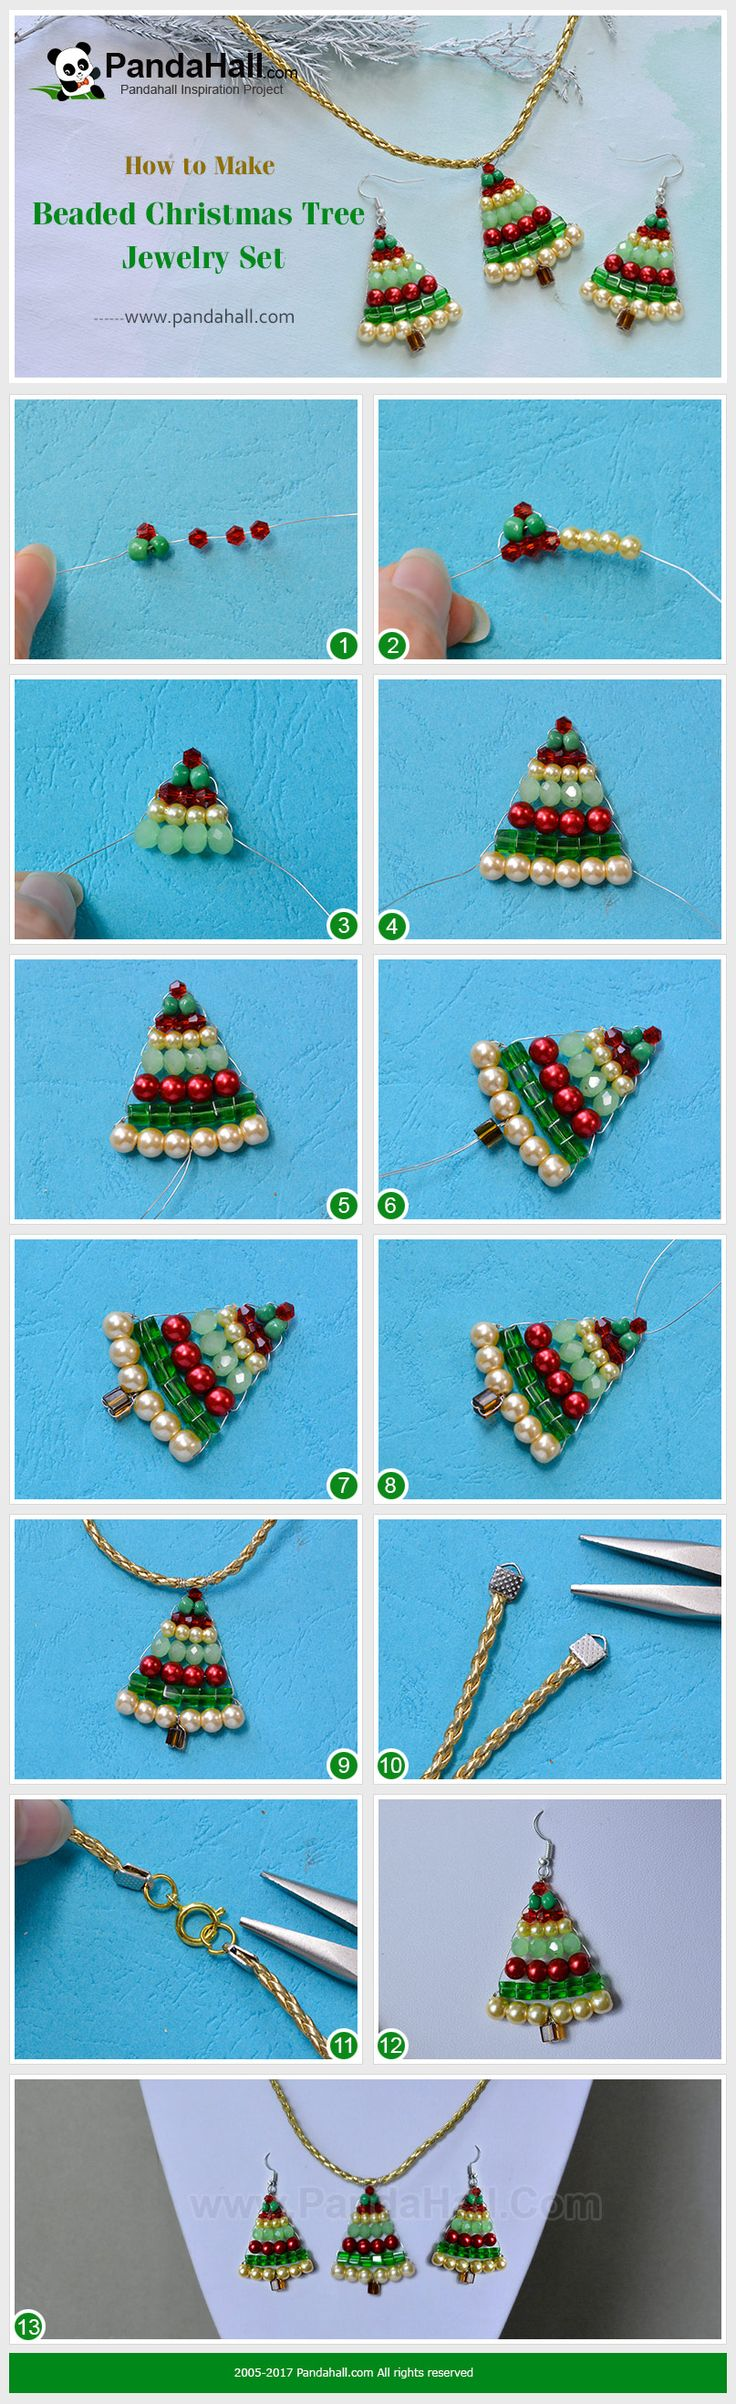 PandaHall Christmas Jewelry Making---Beaded Christmas Tree Jewelry Set Everyone loves Christmas tree. Today I will show you how to make beaded Christmas tree with beads and wires. The Christmas tree pattern is easy and follow me to have a nice try! #Panda